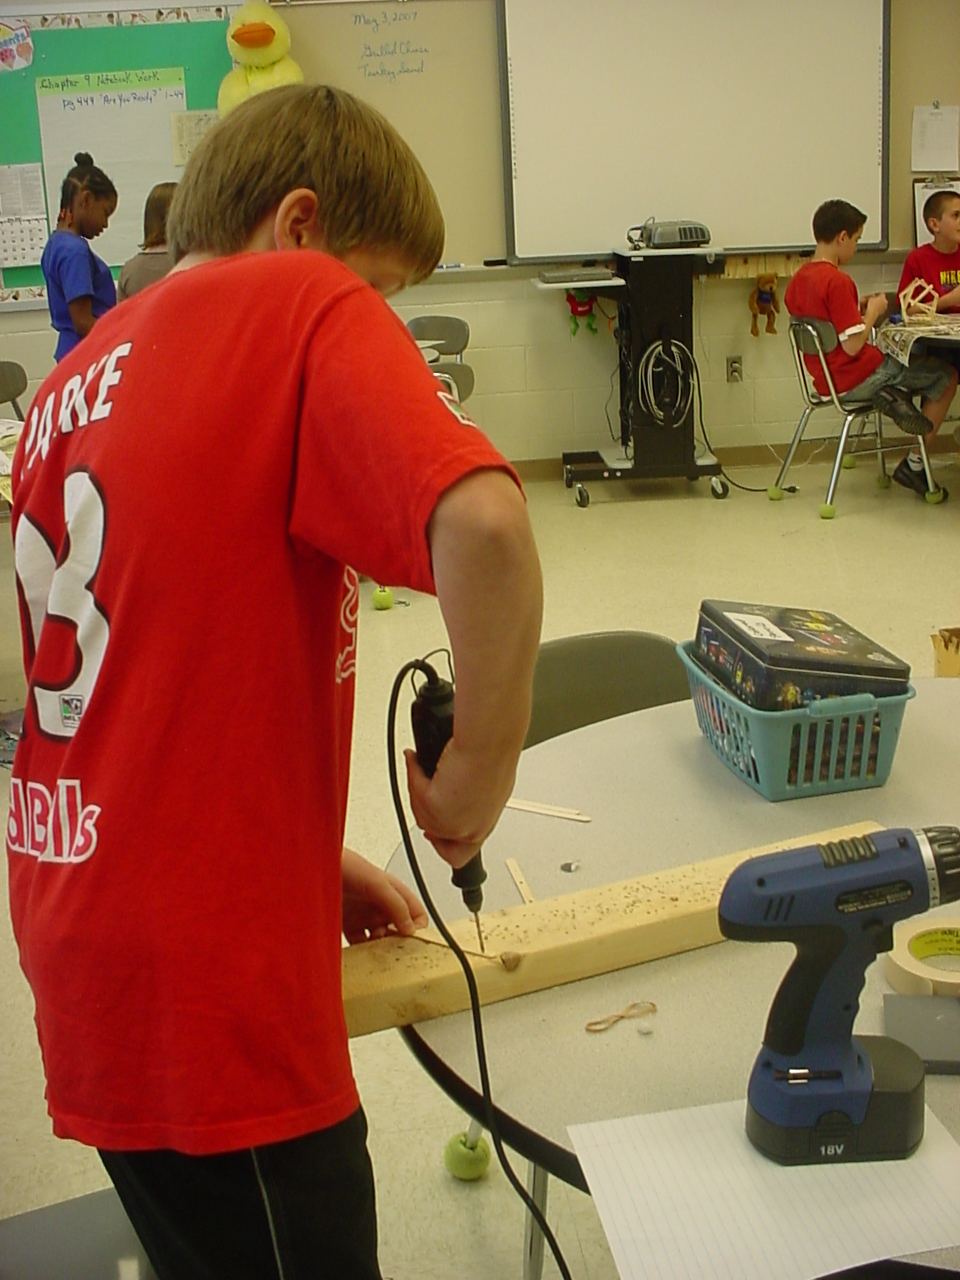 6th grade boy using power tools